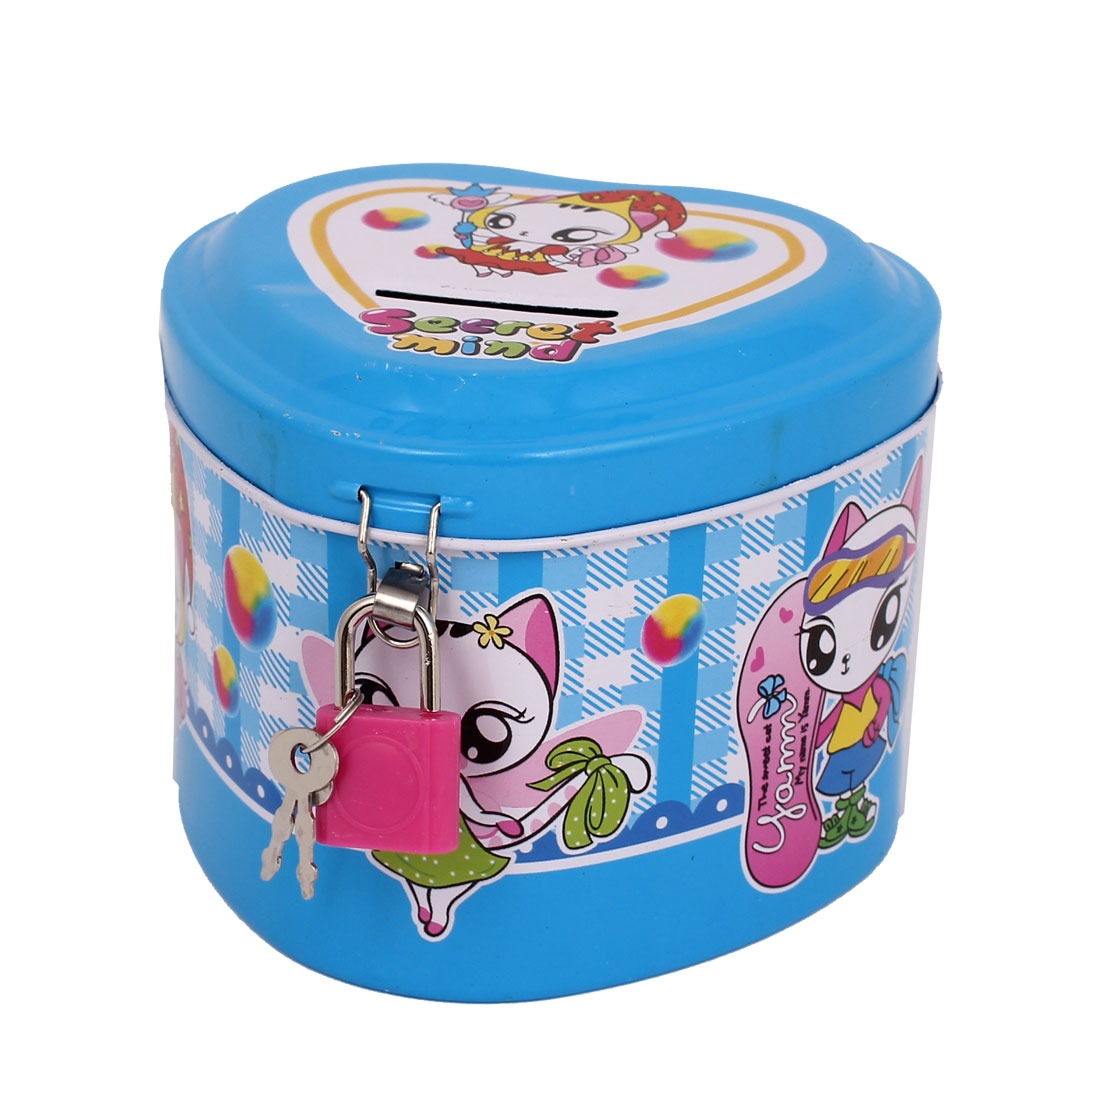 Cartoon Animal Printed Heart Shaped Metal Piggy Bank Money Saving Box Blue w Padlock